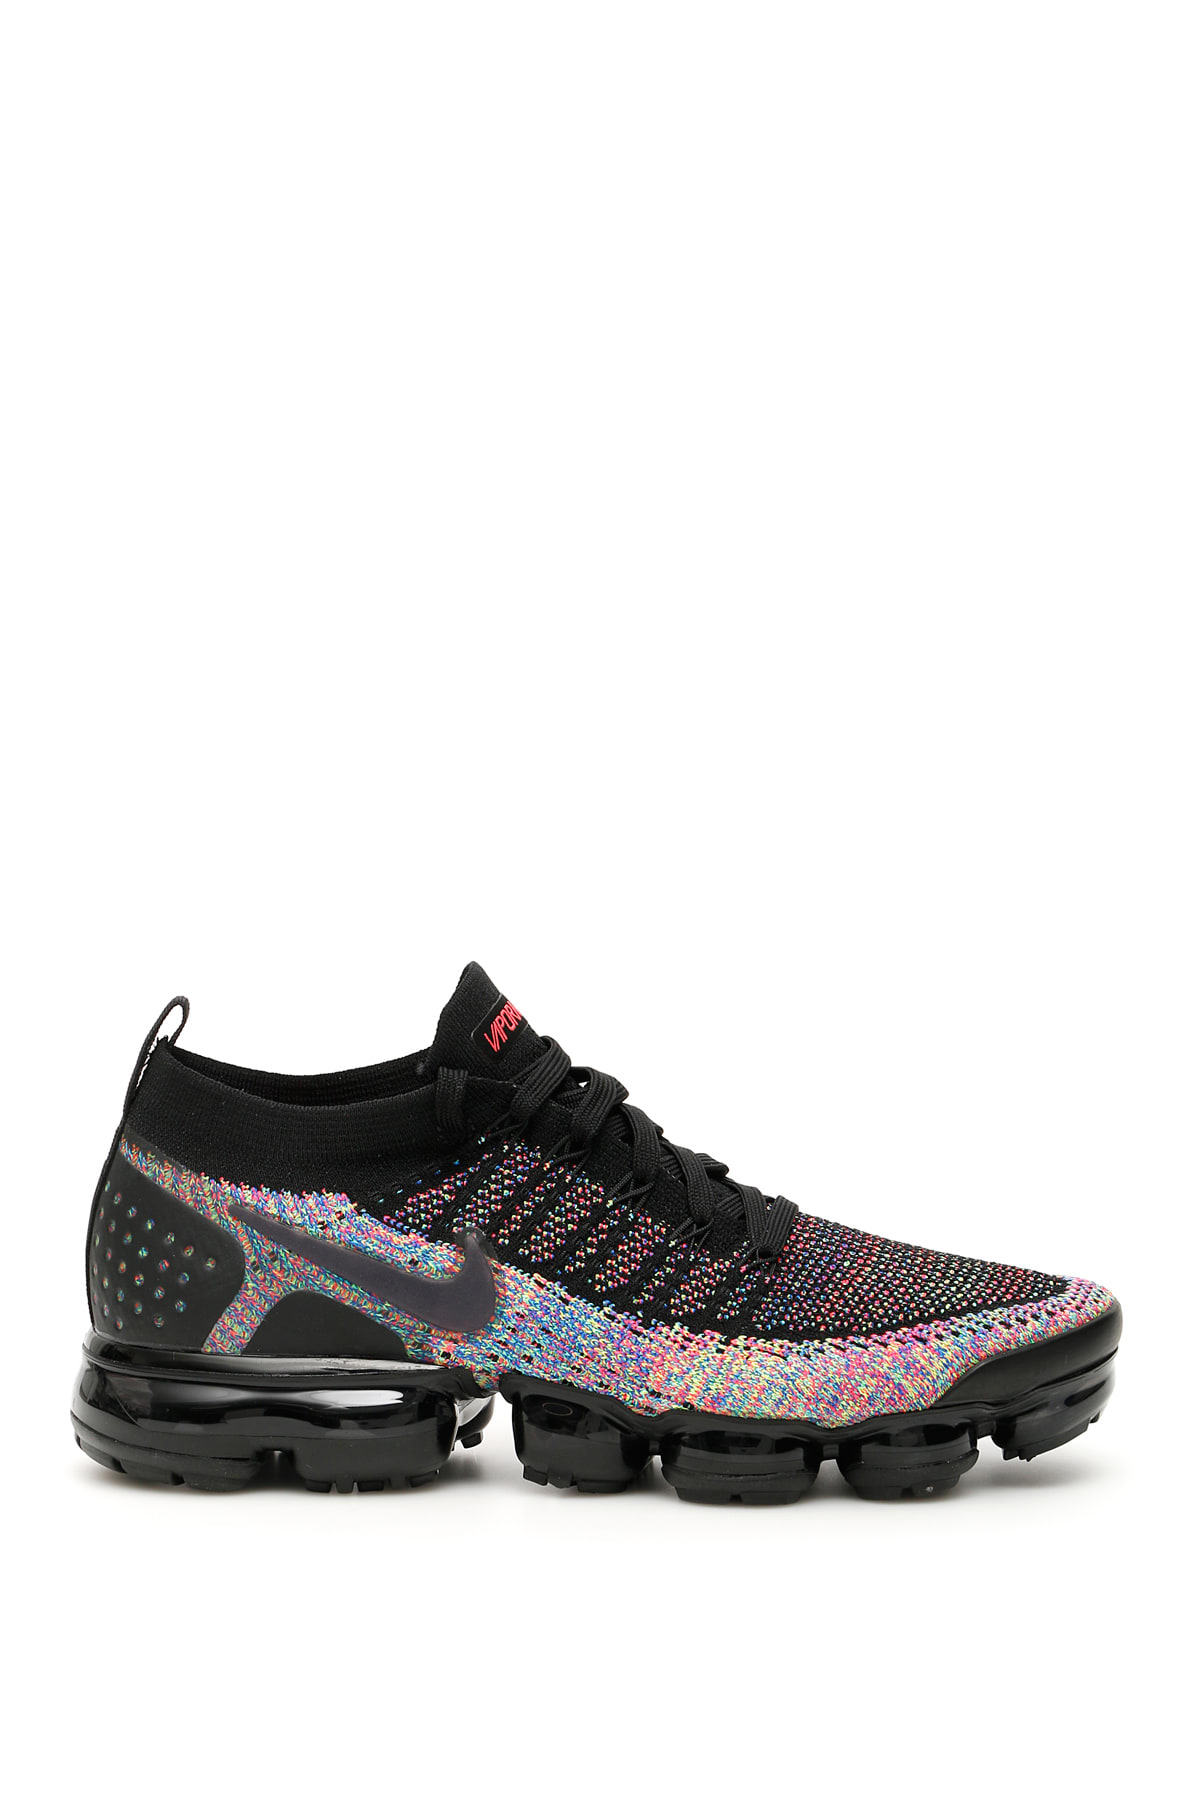 new product 13030 7bd69 Nike Air Vapormax Flyknit 2 Sneakers